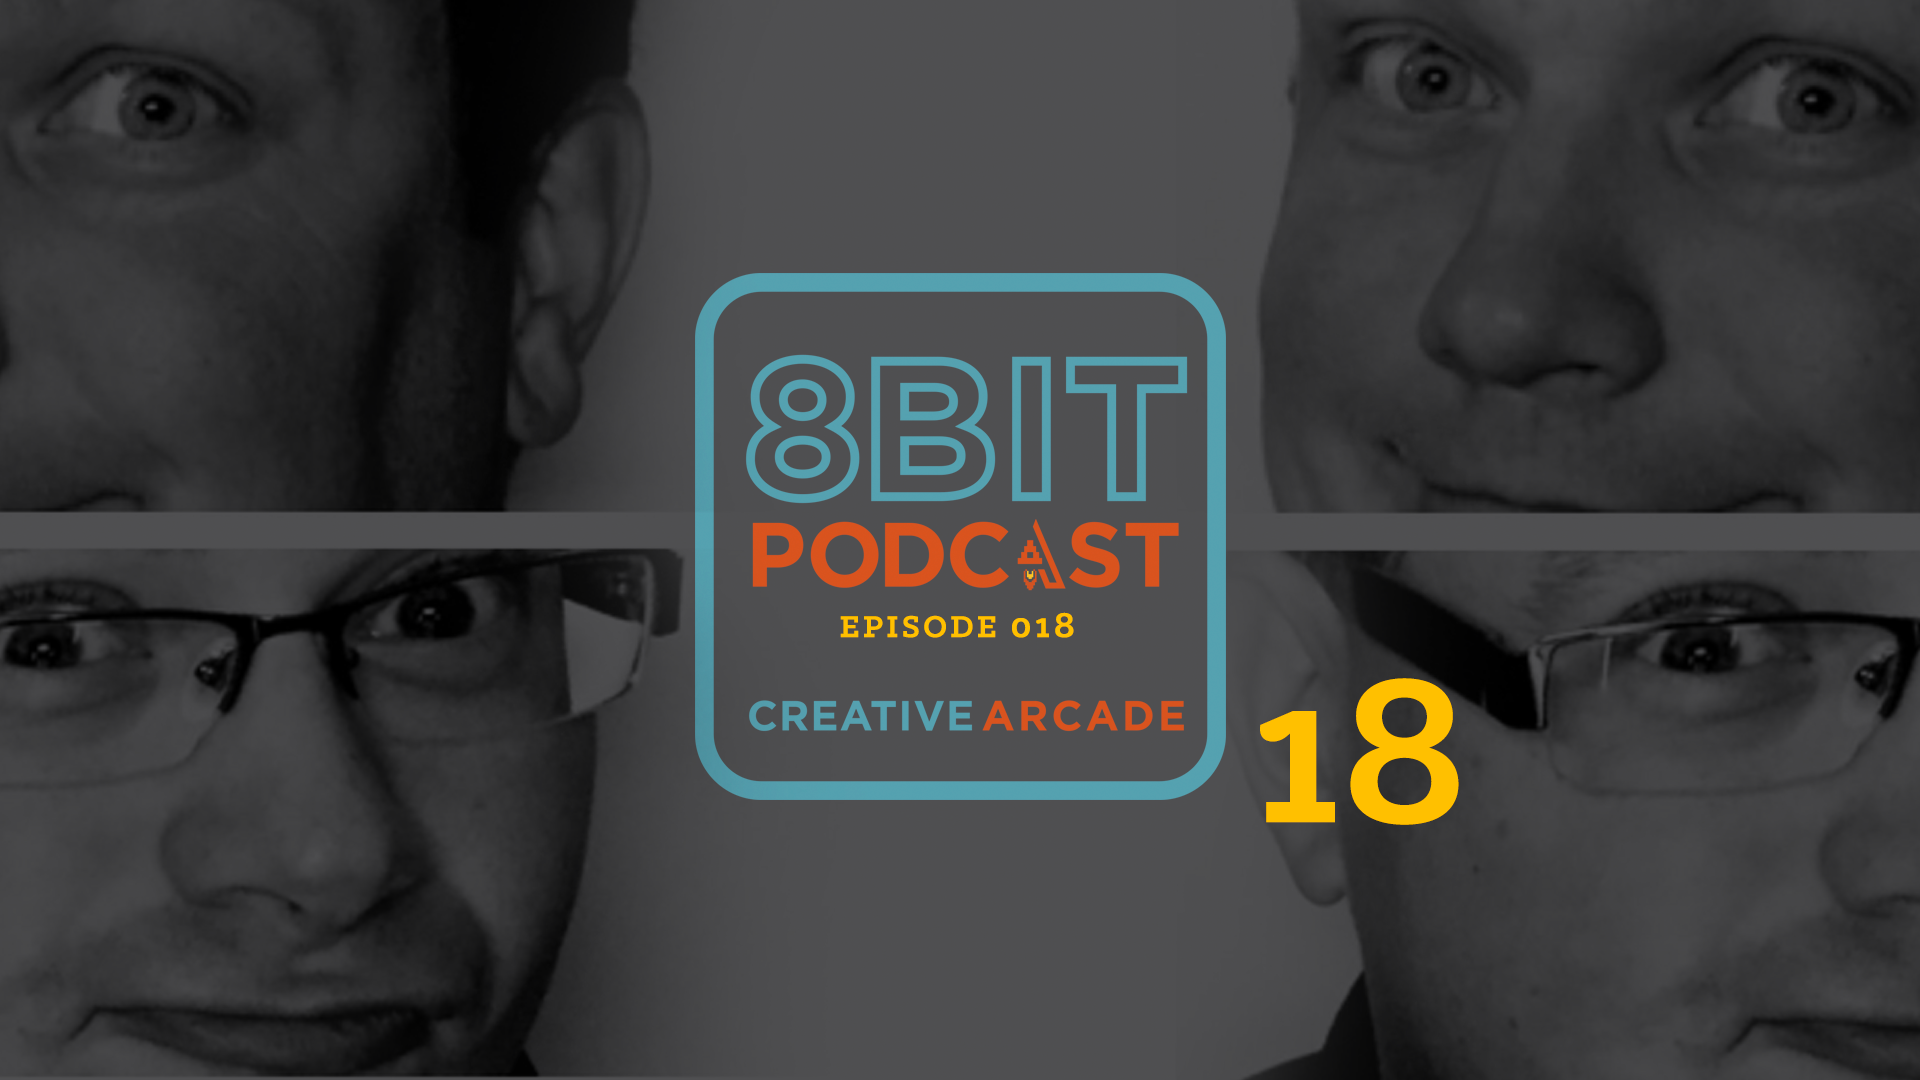 The 8Bit Podcast Episode 018 Featured Image